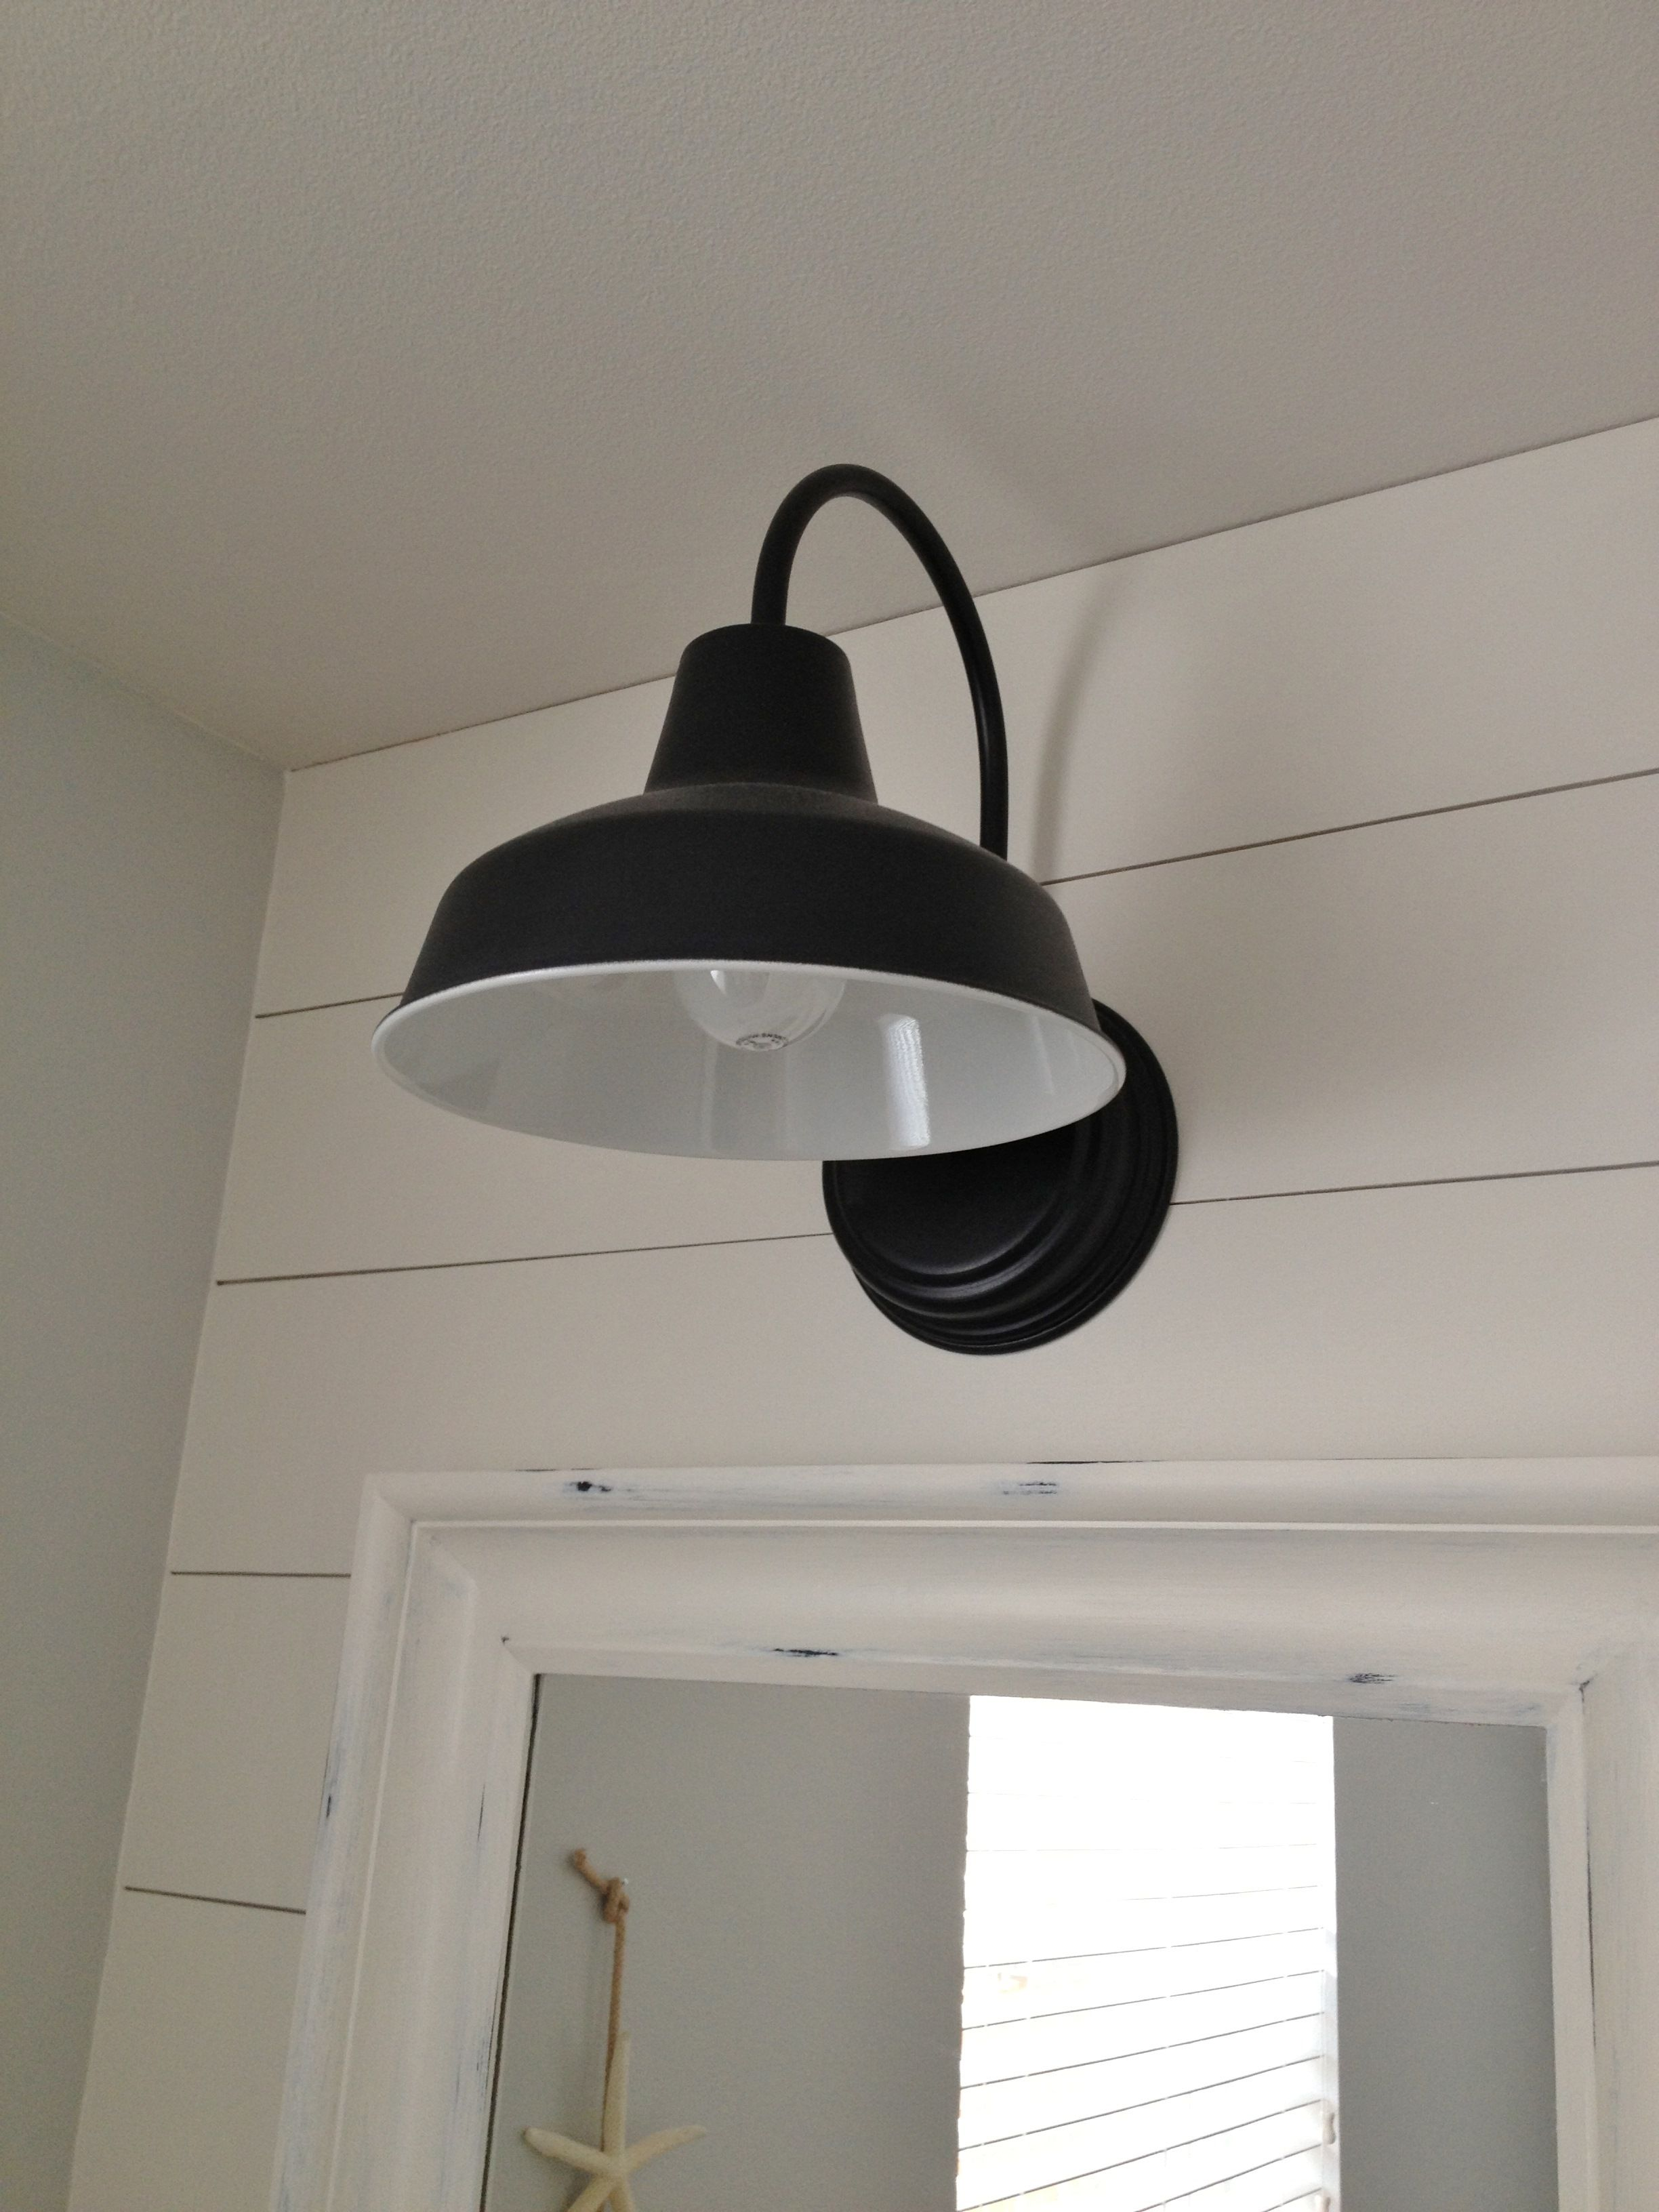 Barn Wall Sconce Lends Farmhouse Look to Powder Room Remake